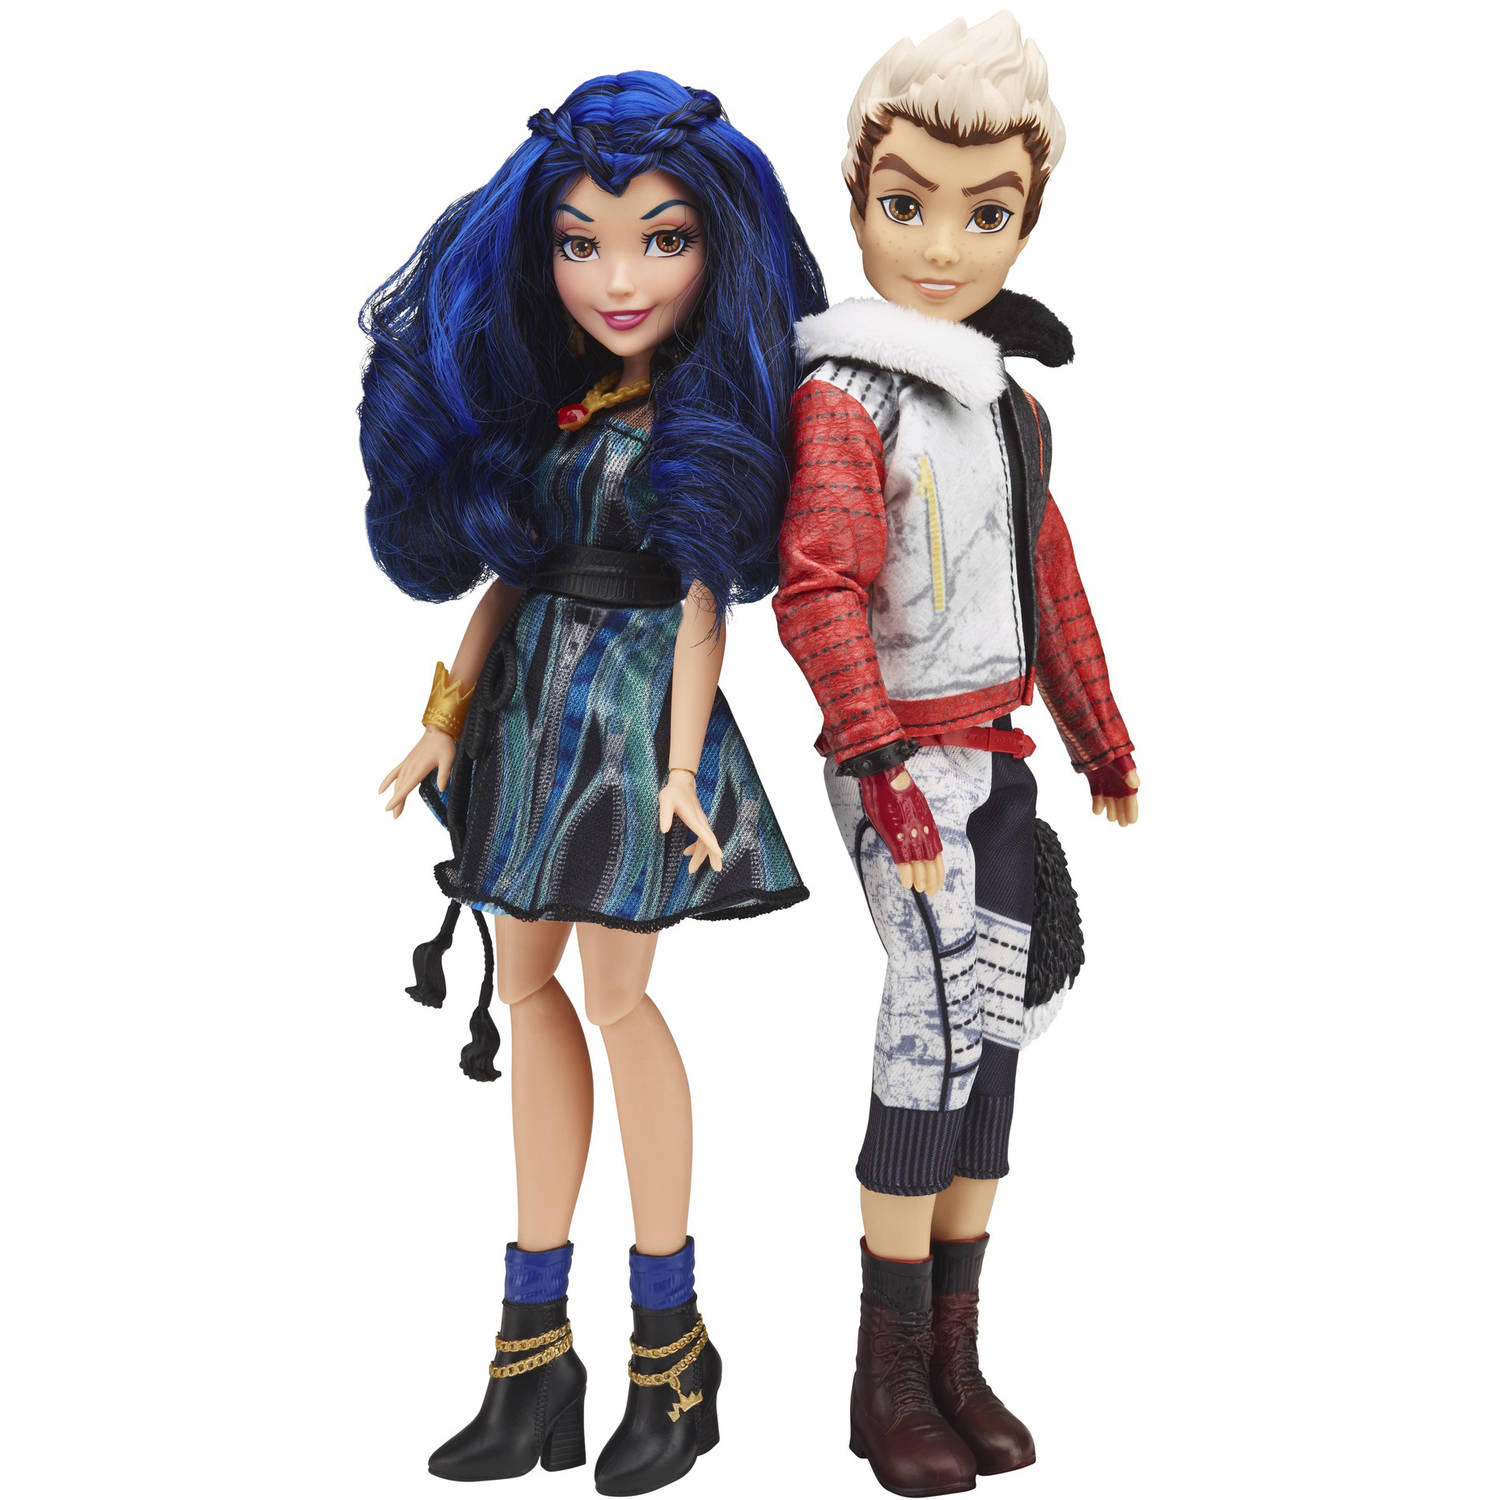 Disney Descendants 2-Pack Evie Isle of the Lost and Carlos Isle of the Lost Dolls